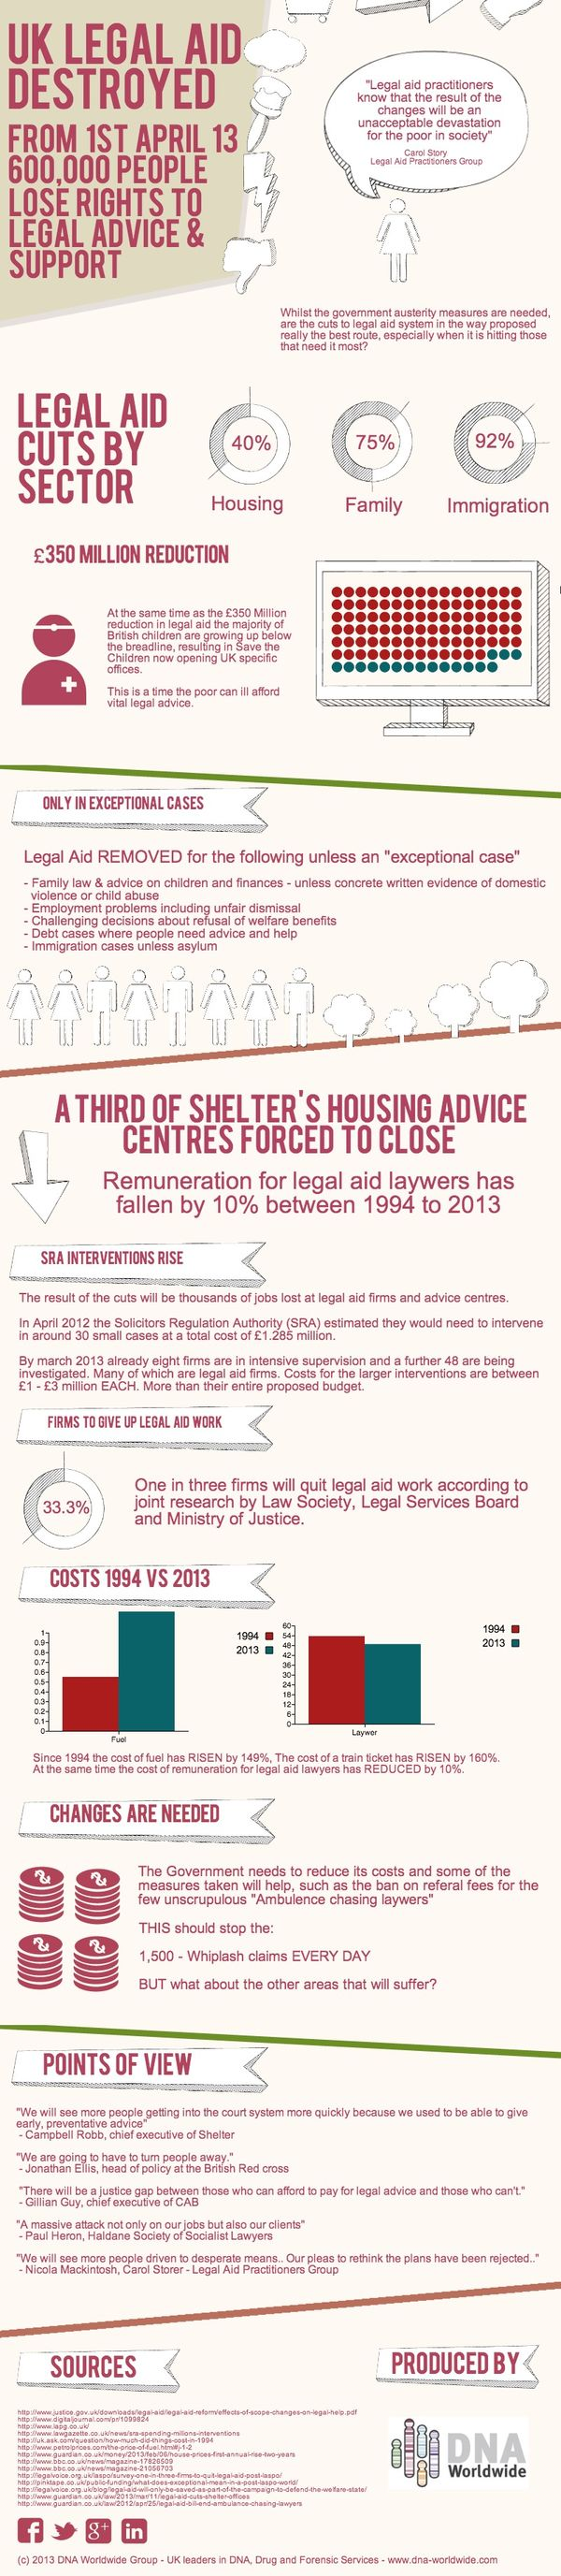 UK Legal Aid Cuts from the 1st April 2013 [Infographic] image UK Legal Aid Cuts from the 1st April 2013